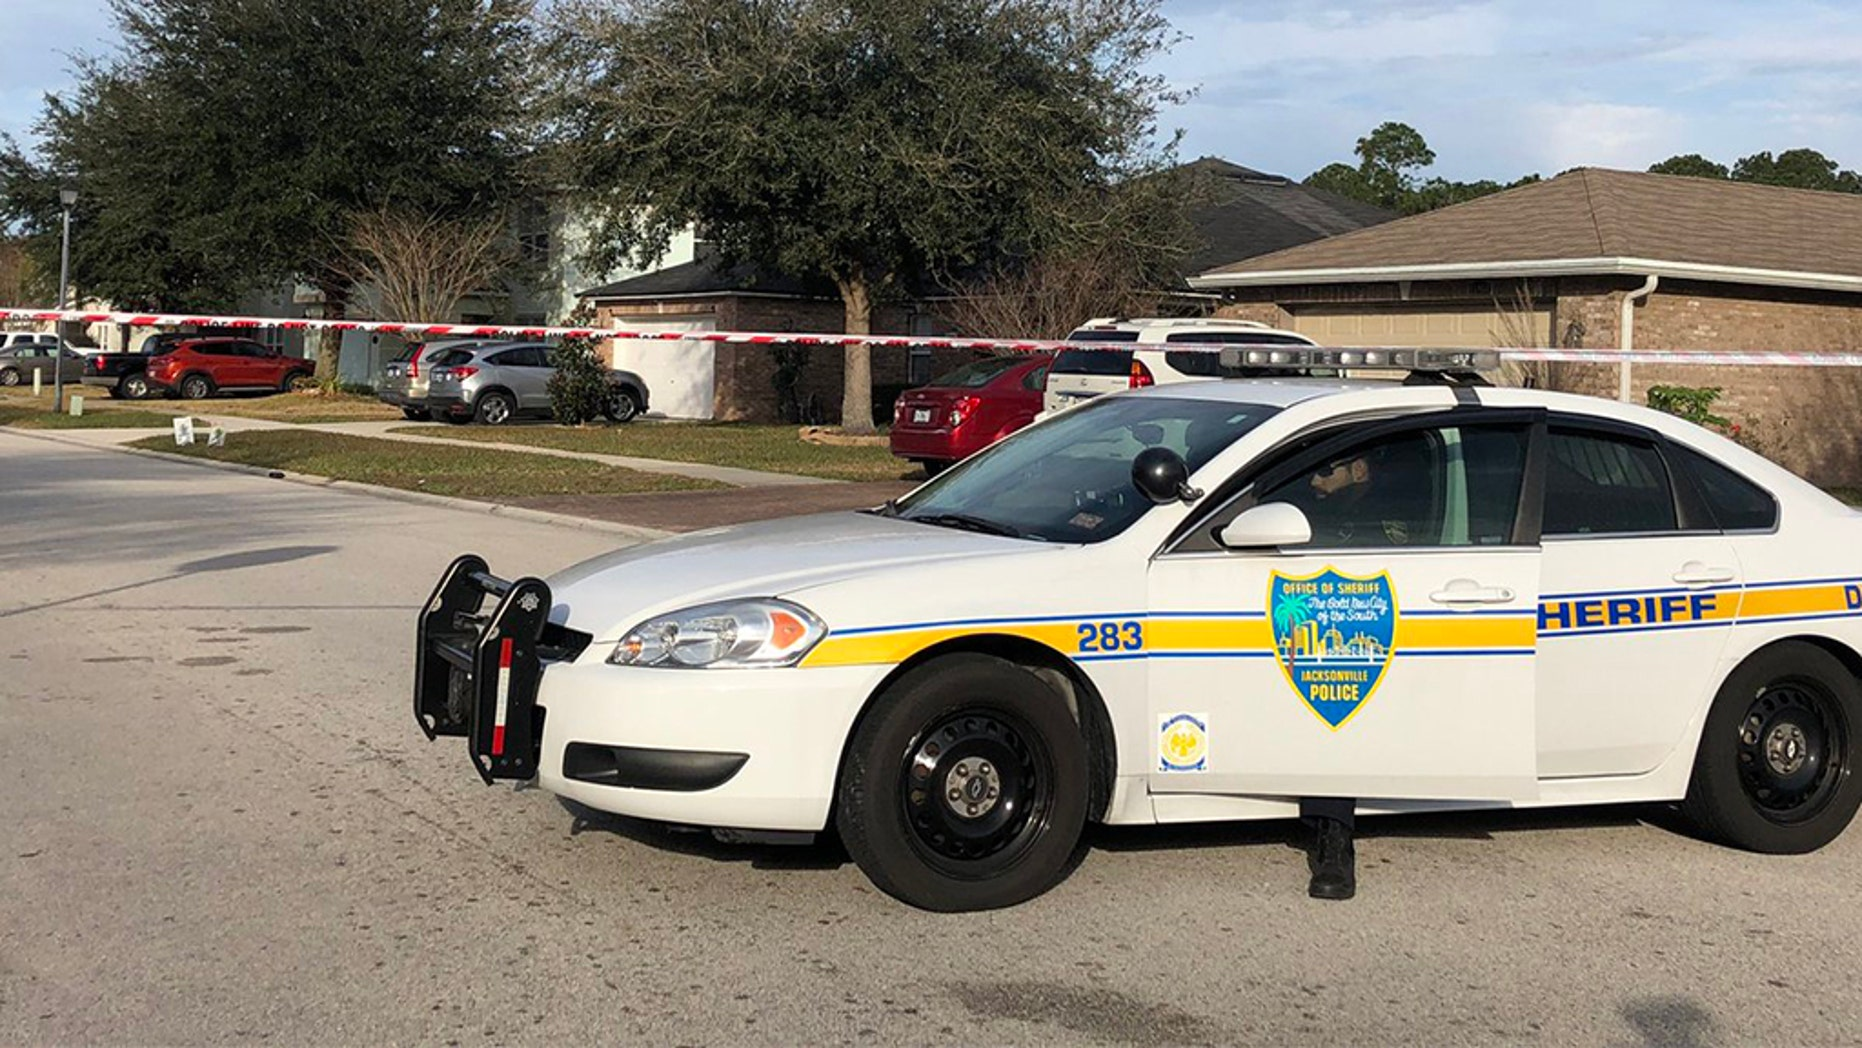 Deputies with the Jacksonville Sheriff's Office were investigating a shooting Saturday in which three people were killed in what they believe was a murder-suicide. Two others were critically wounded.